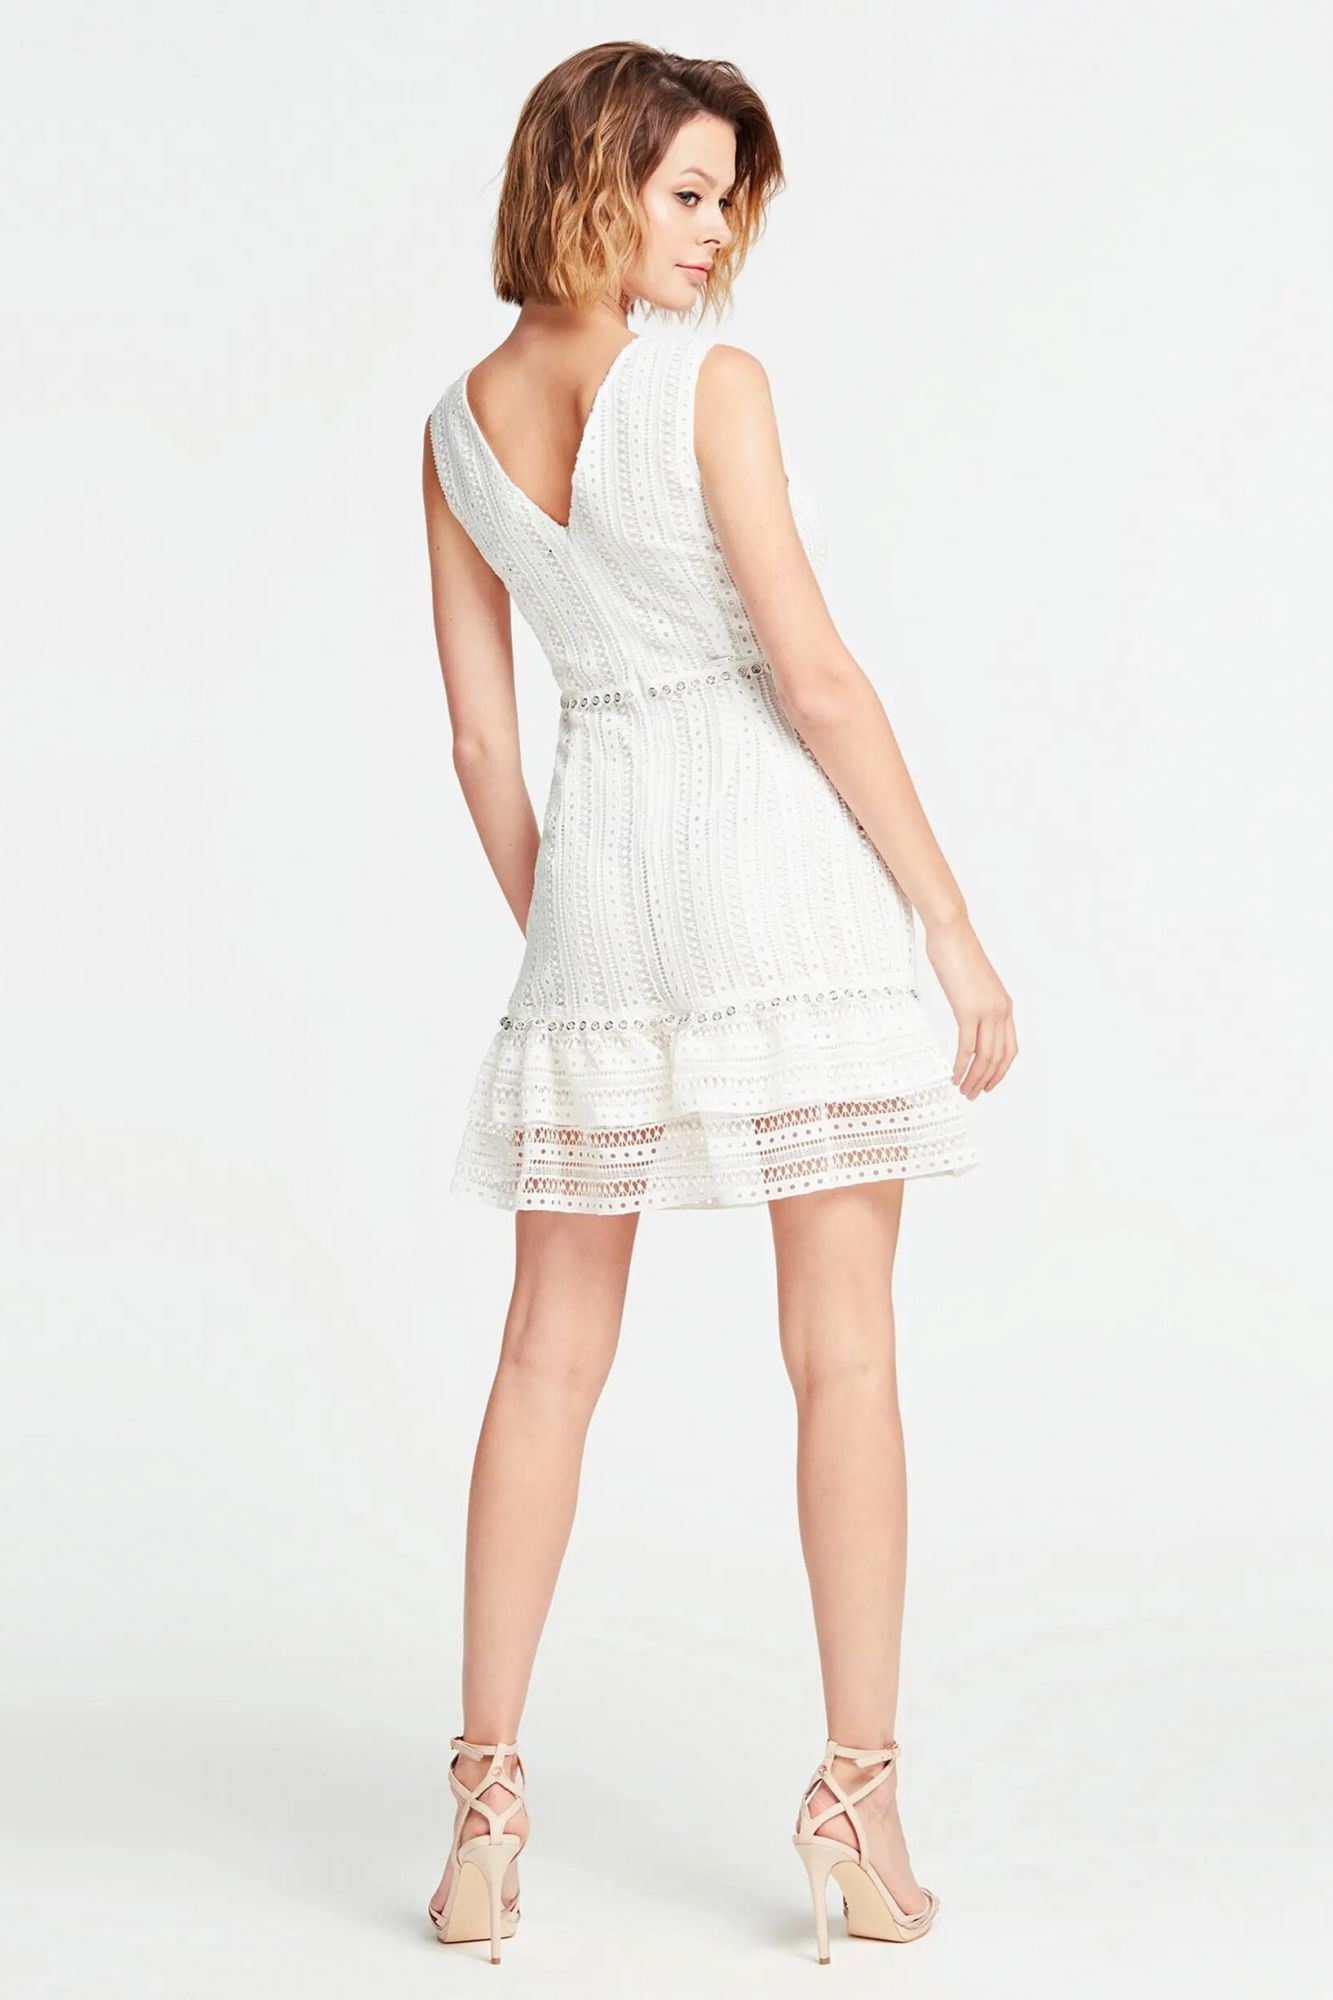 Guess white dress with lace